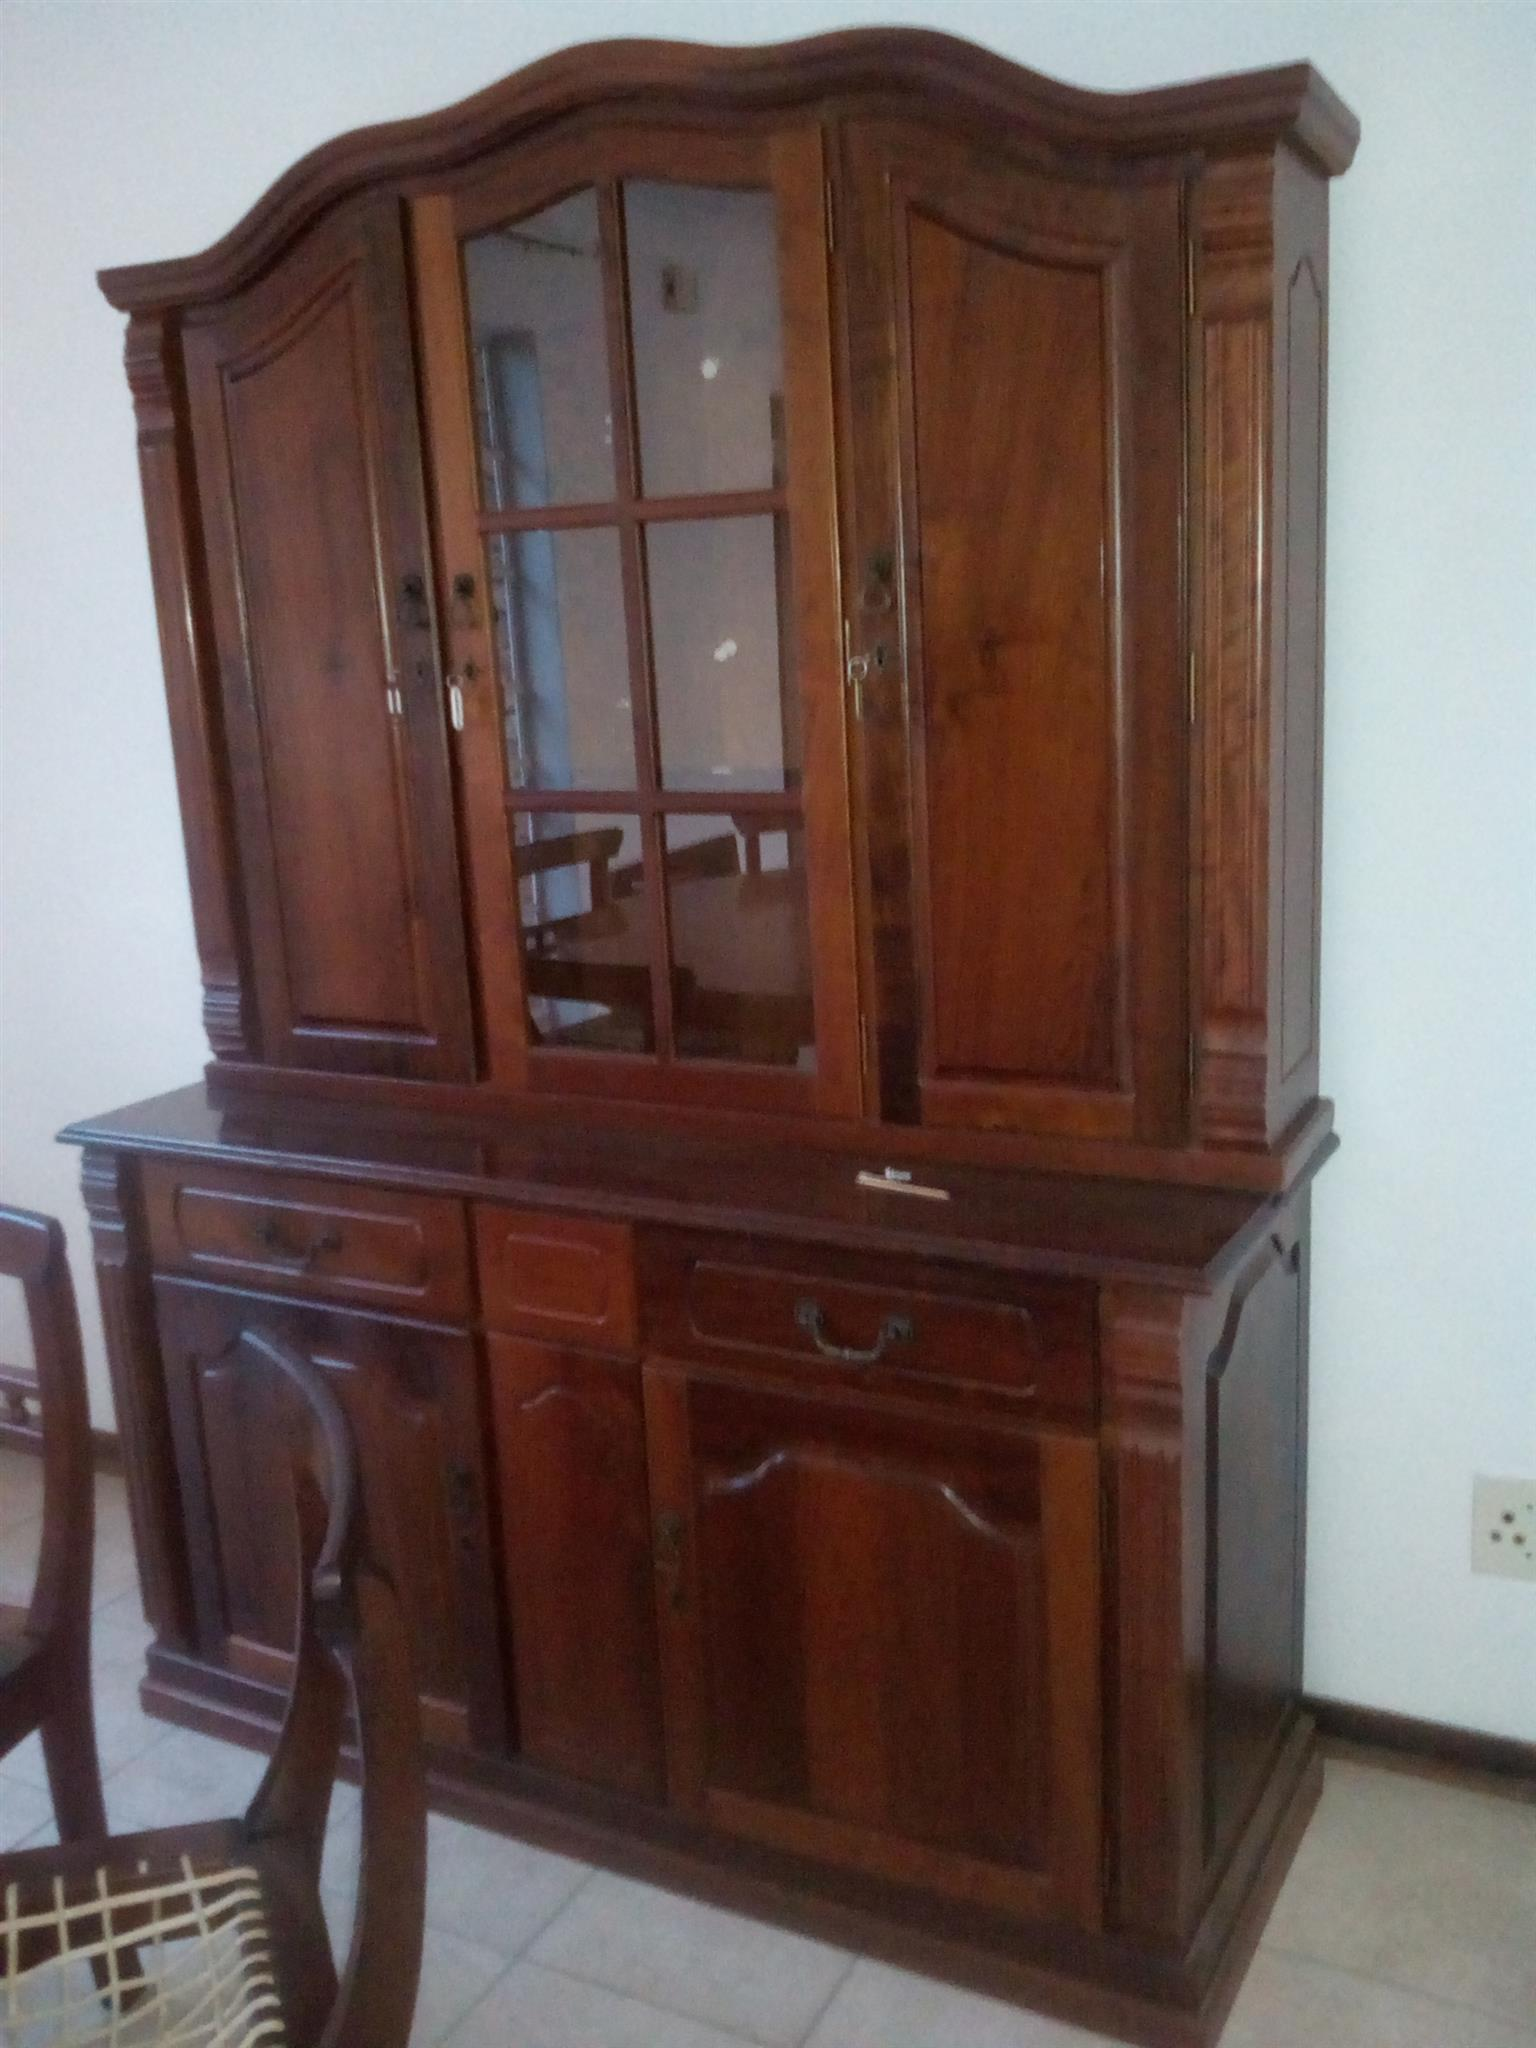 cupboard building click cupboards trade me enlarge kitchen htm renovation photo cabinets to listing antique